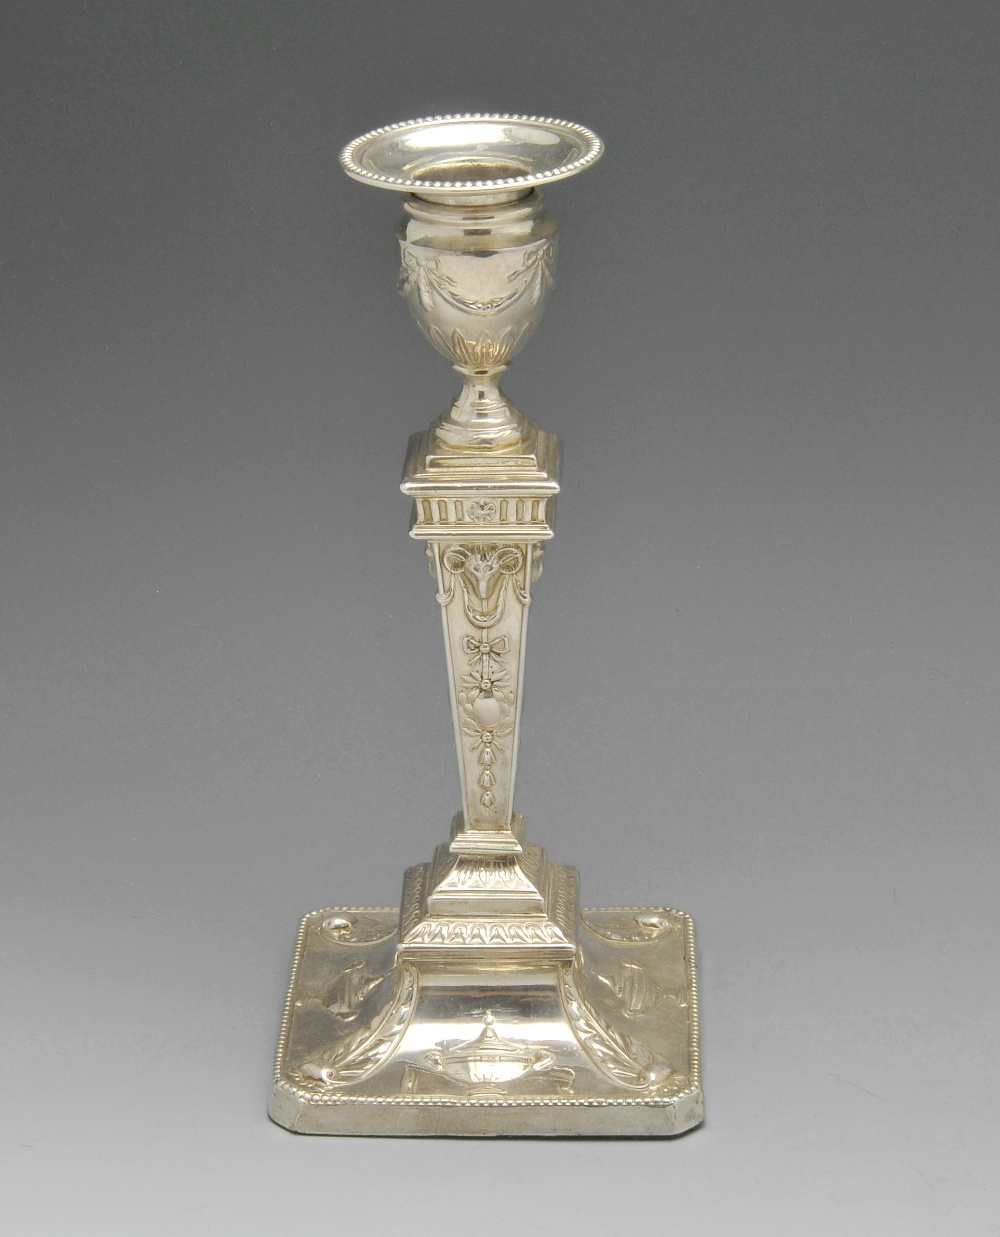 Lot 61 - An Edwardian silver mounted candlestick of Neoclassical style, the urn shaped socket raised upon